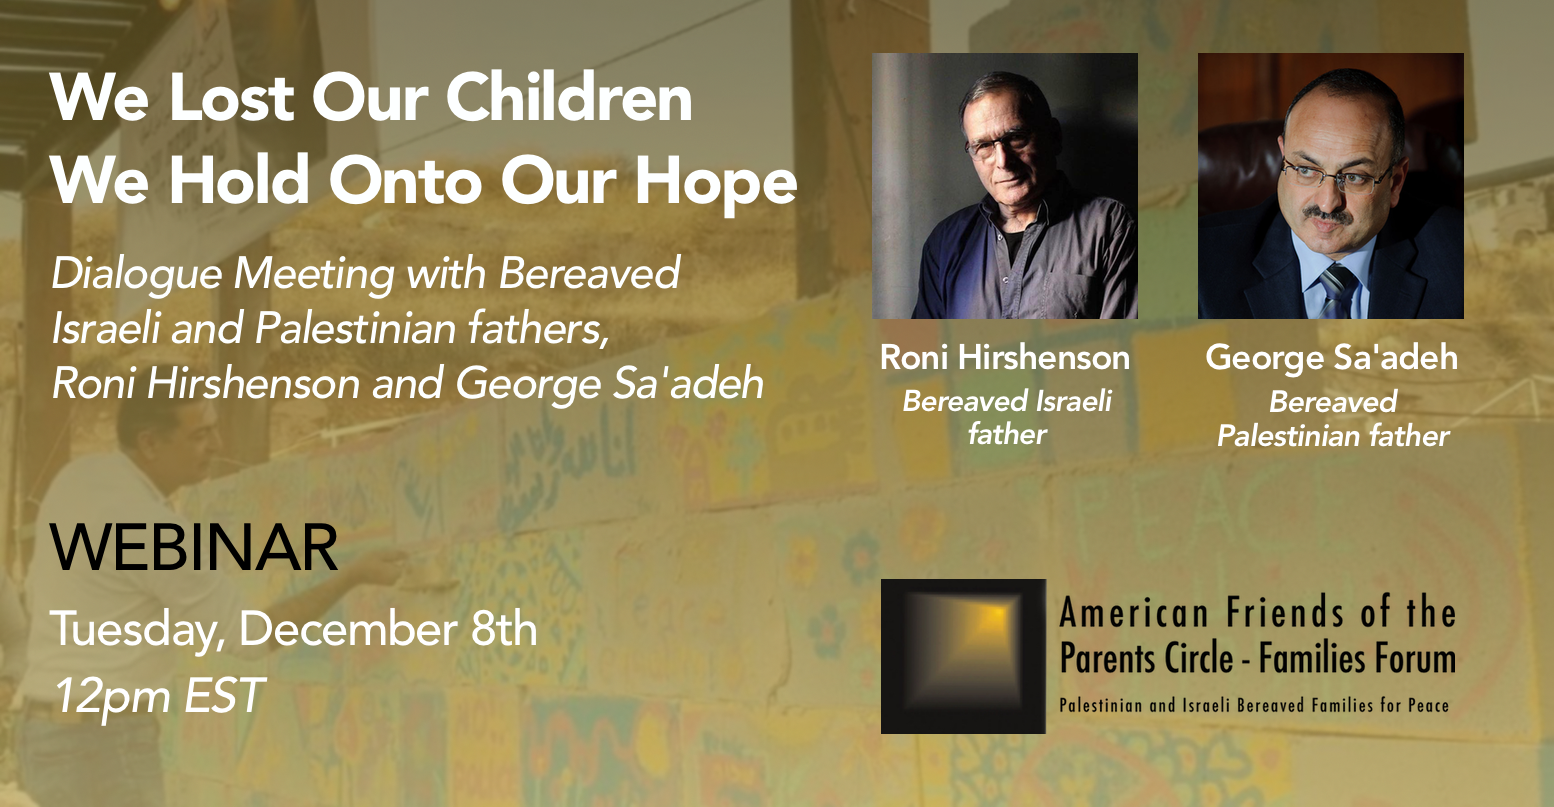 WEBINAR — We Lost Our Children. We Hold Onto Our Hope: Dialogue Meeting with Roni Hirshenson and George Sa'adeh